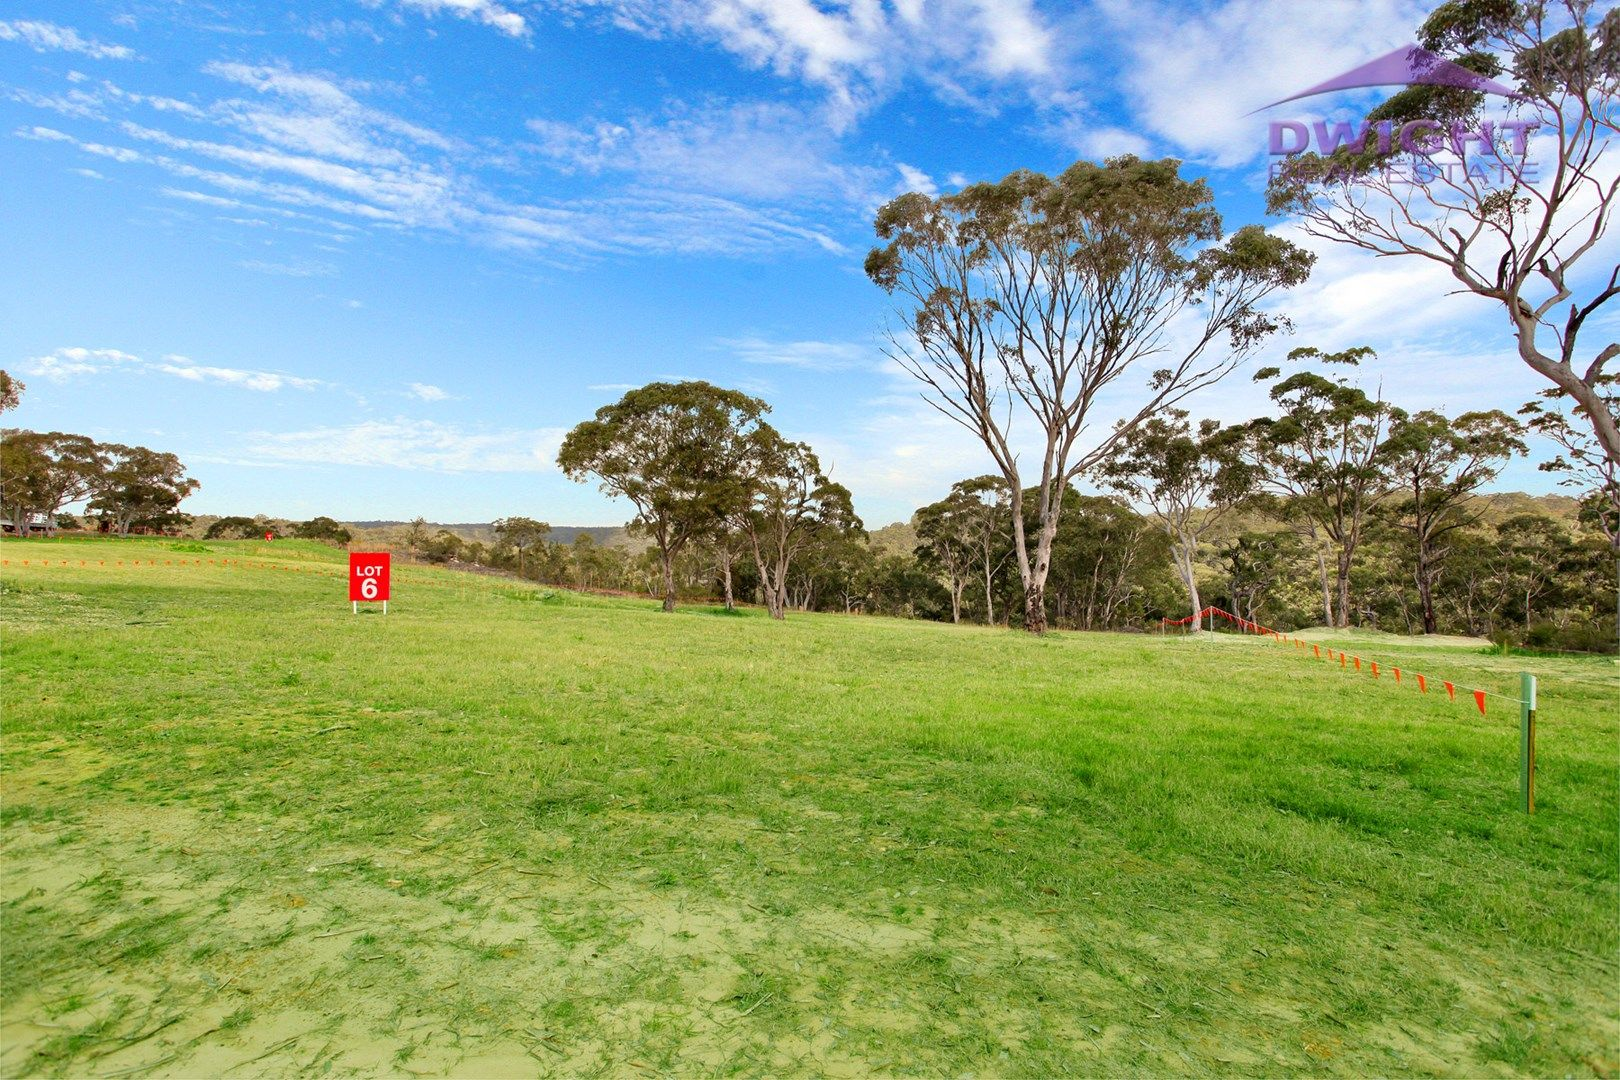 Lot 6 at 46 Idlewild Road, Glenorie NSW 2157, Image 0